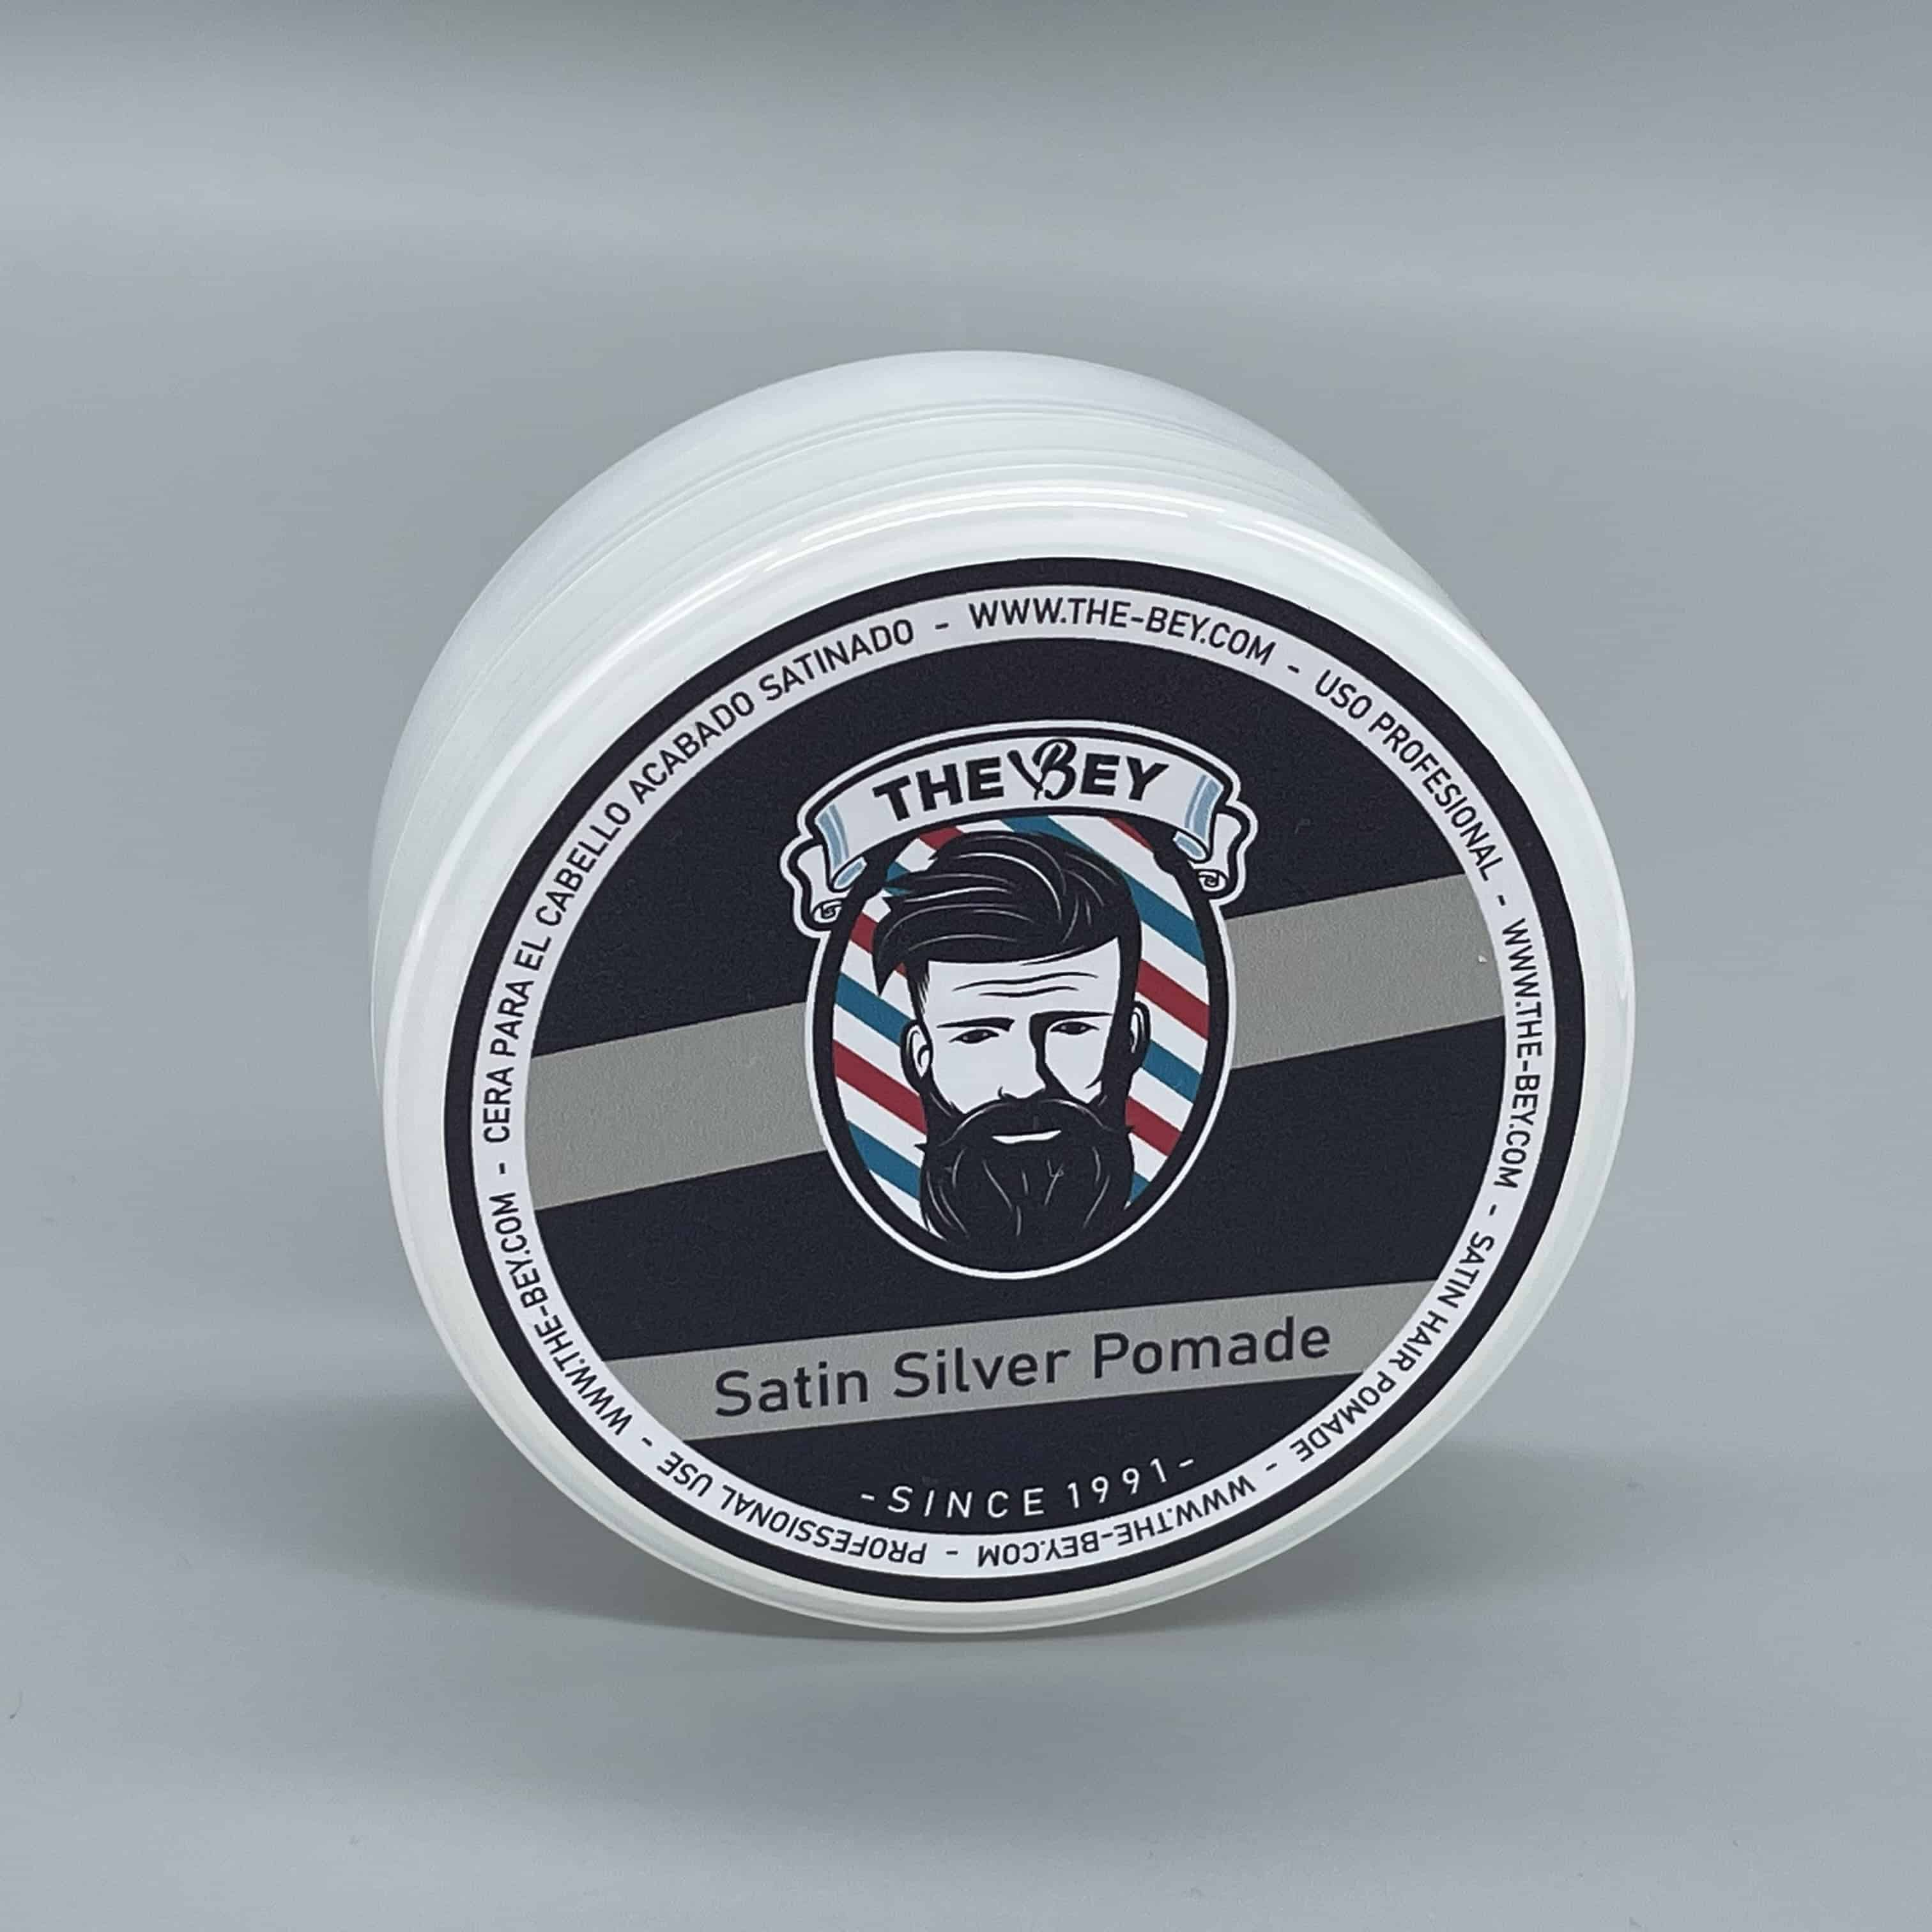 Satin Silver Pomade Wax